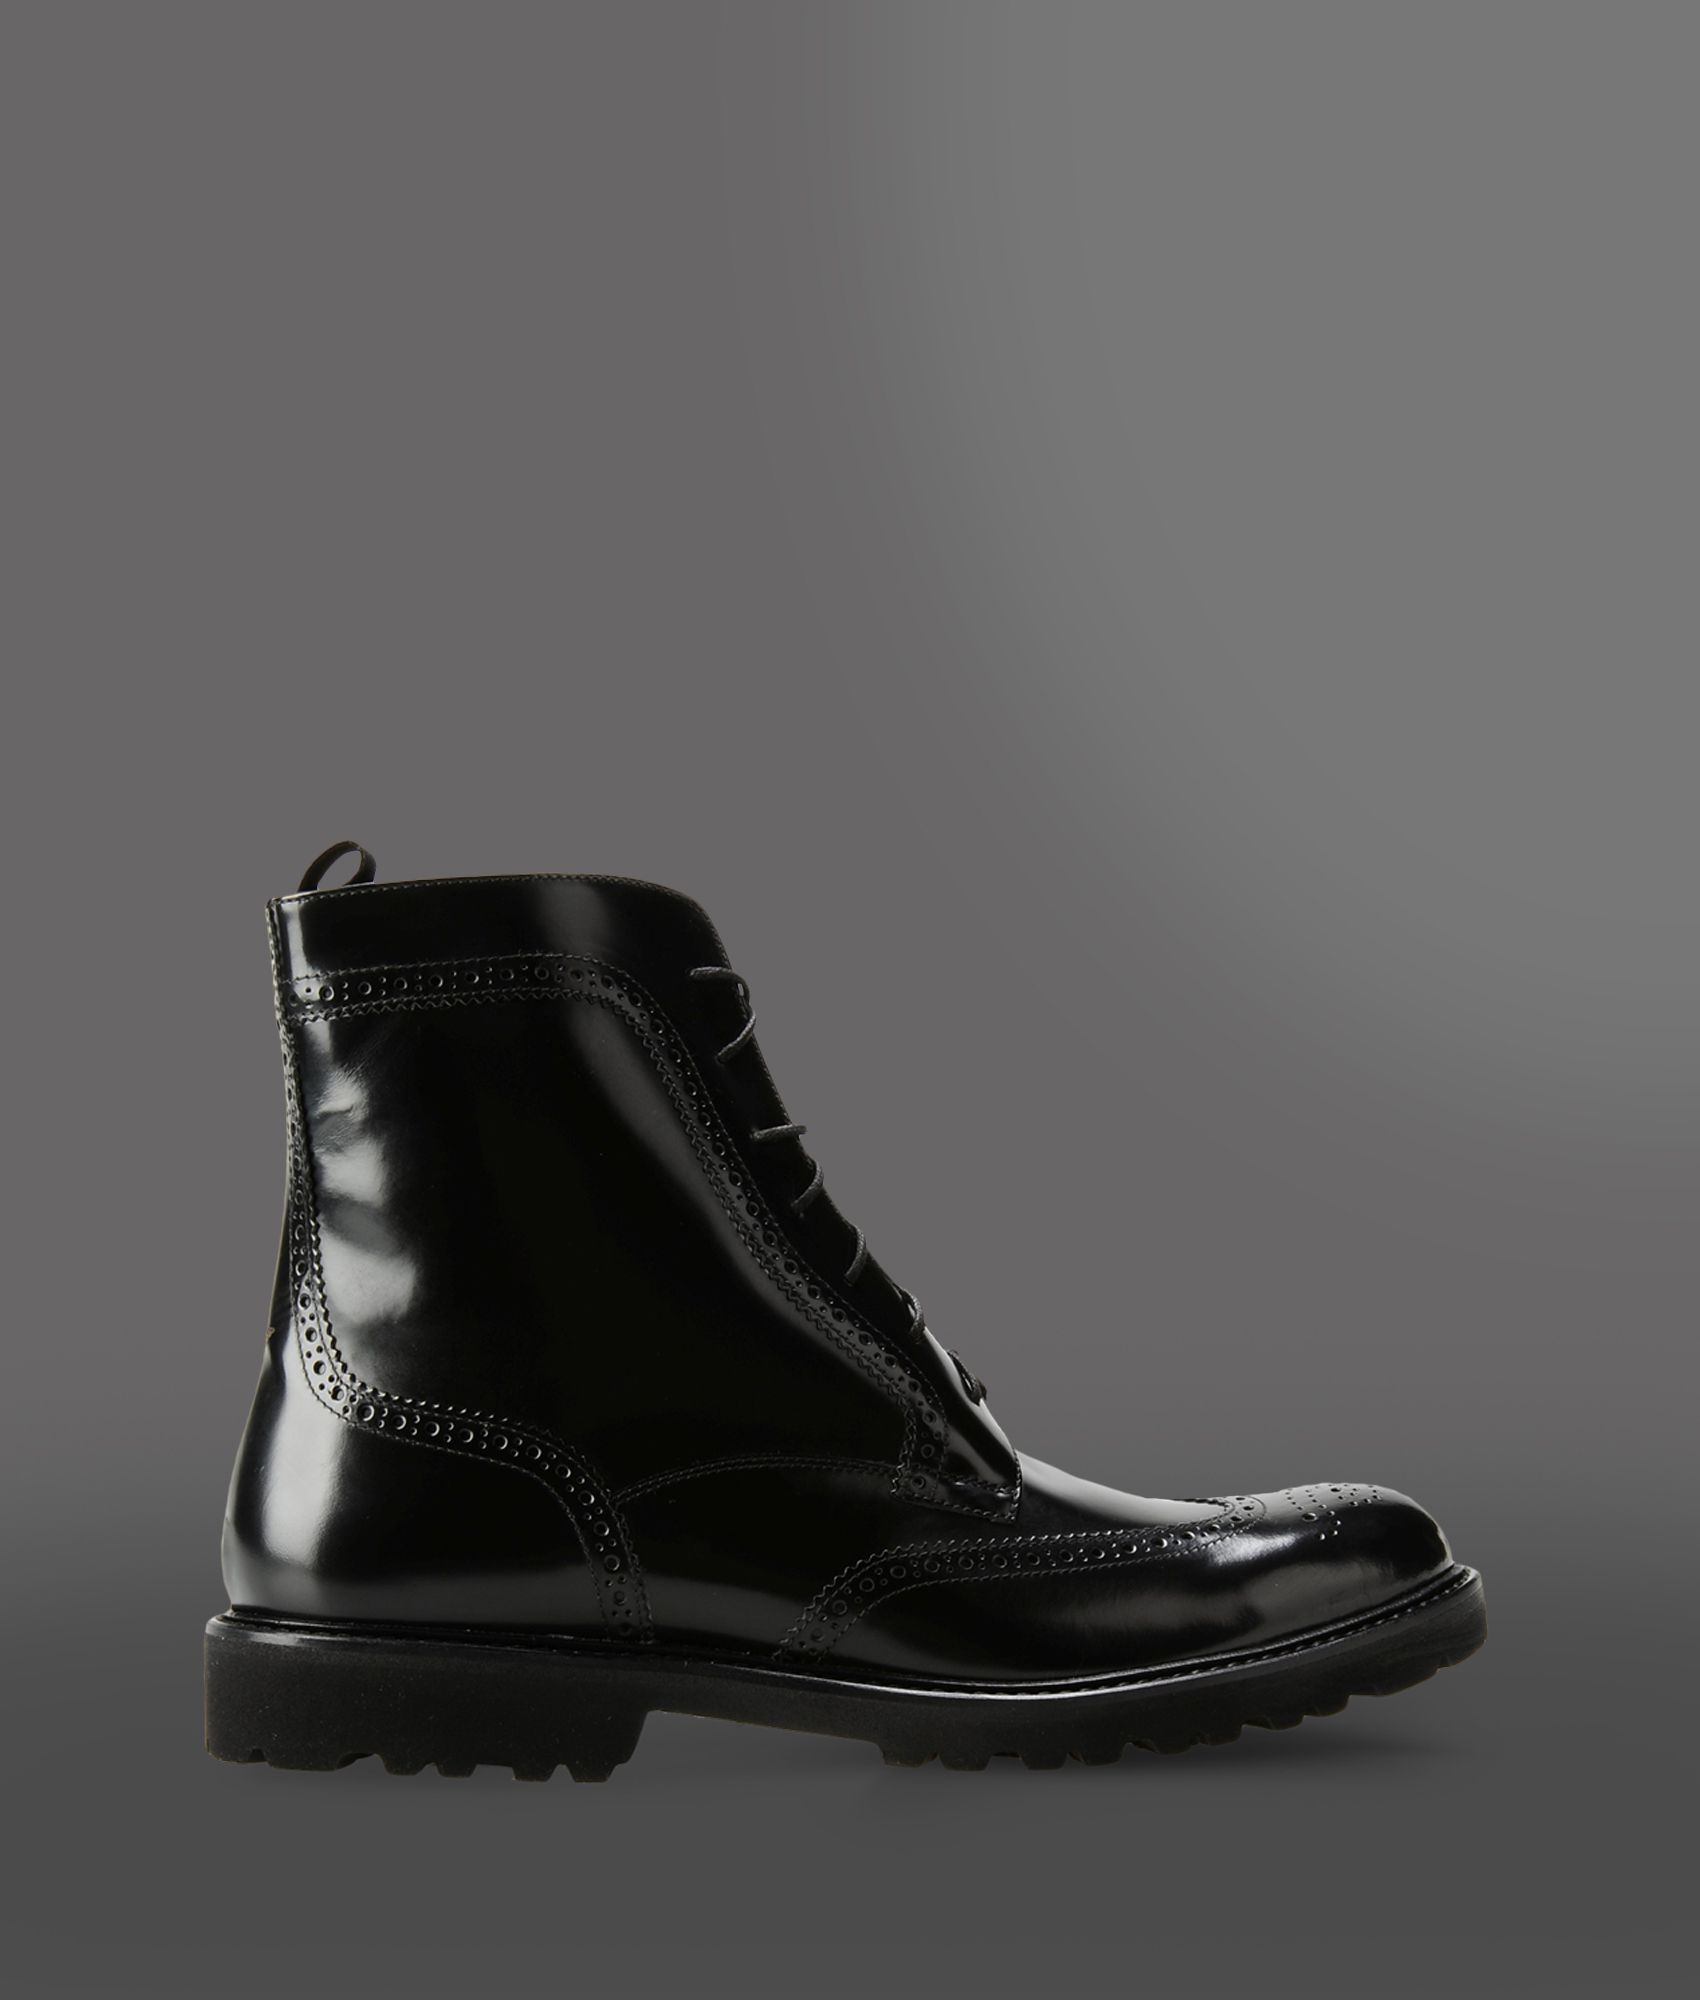 Emporio ArmaniAnkle boots - black